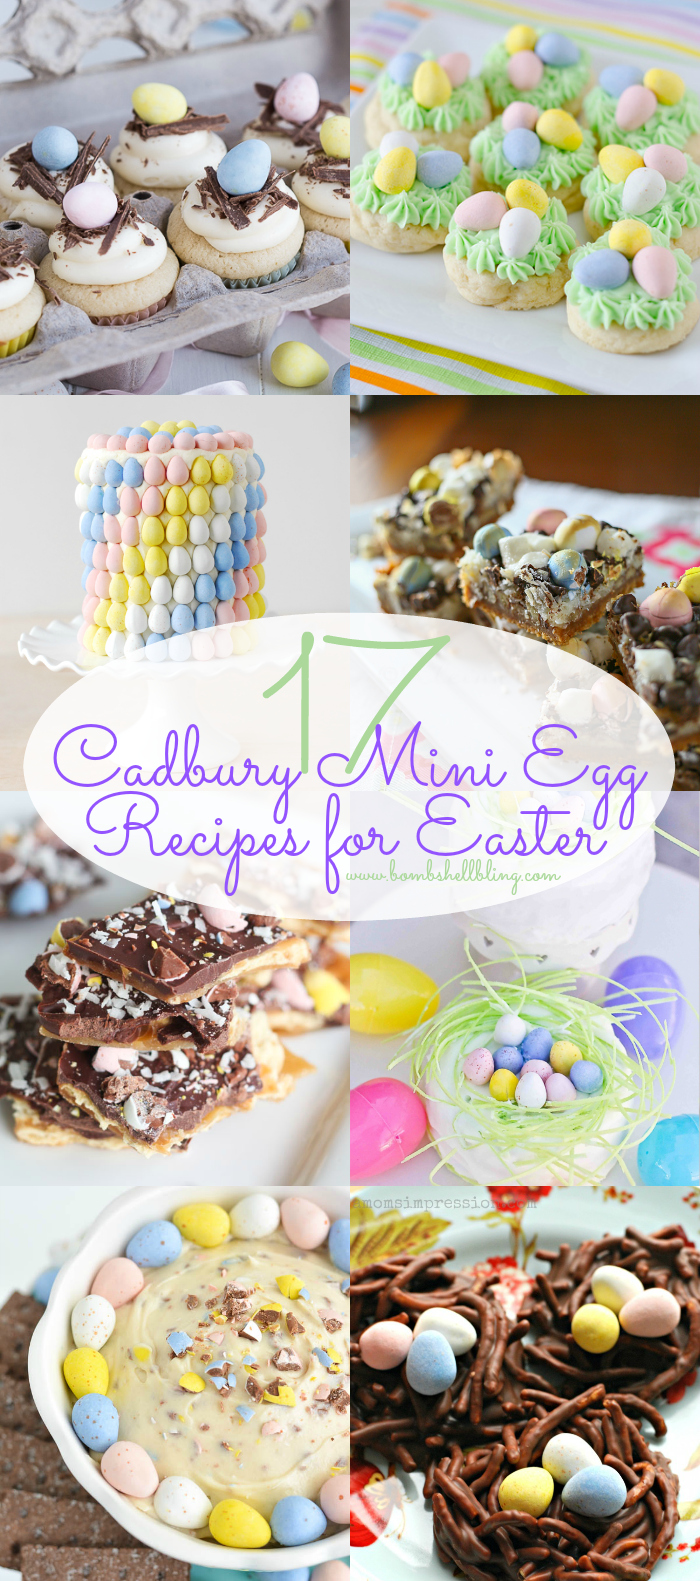 These are 17 of the best Cadbury Mini Eggs recipes from around the internet.  Perfect for Easter baking all Easter season long!